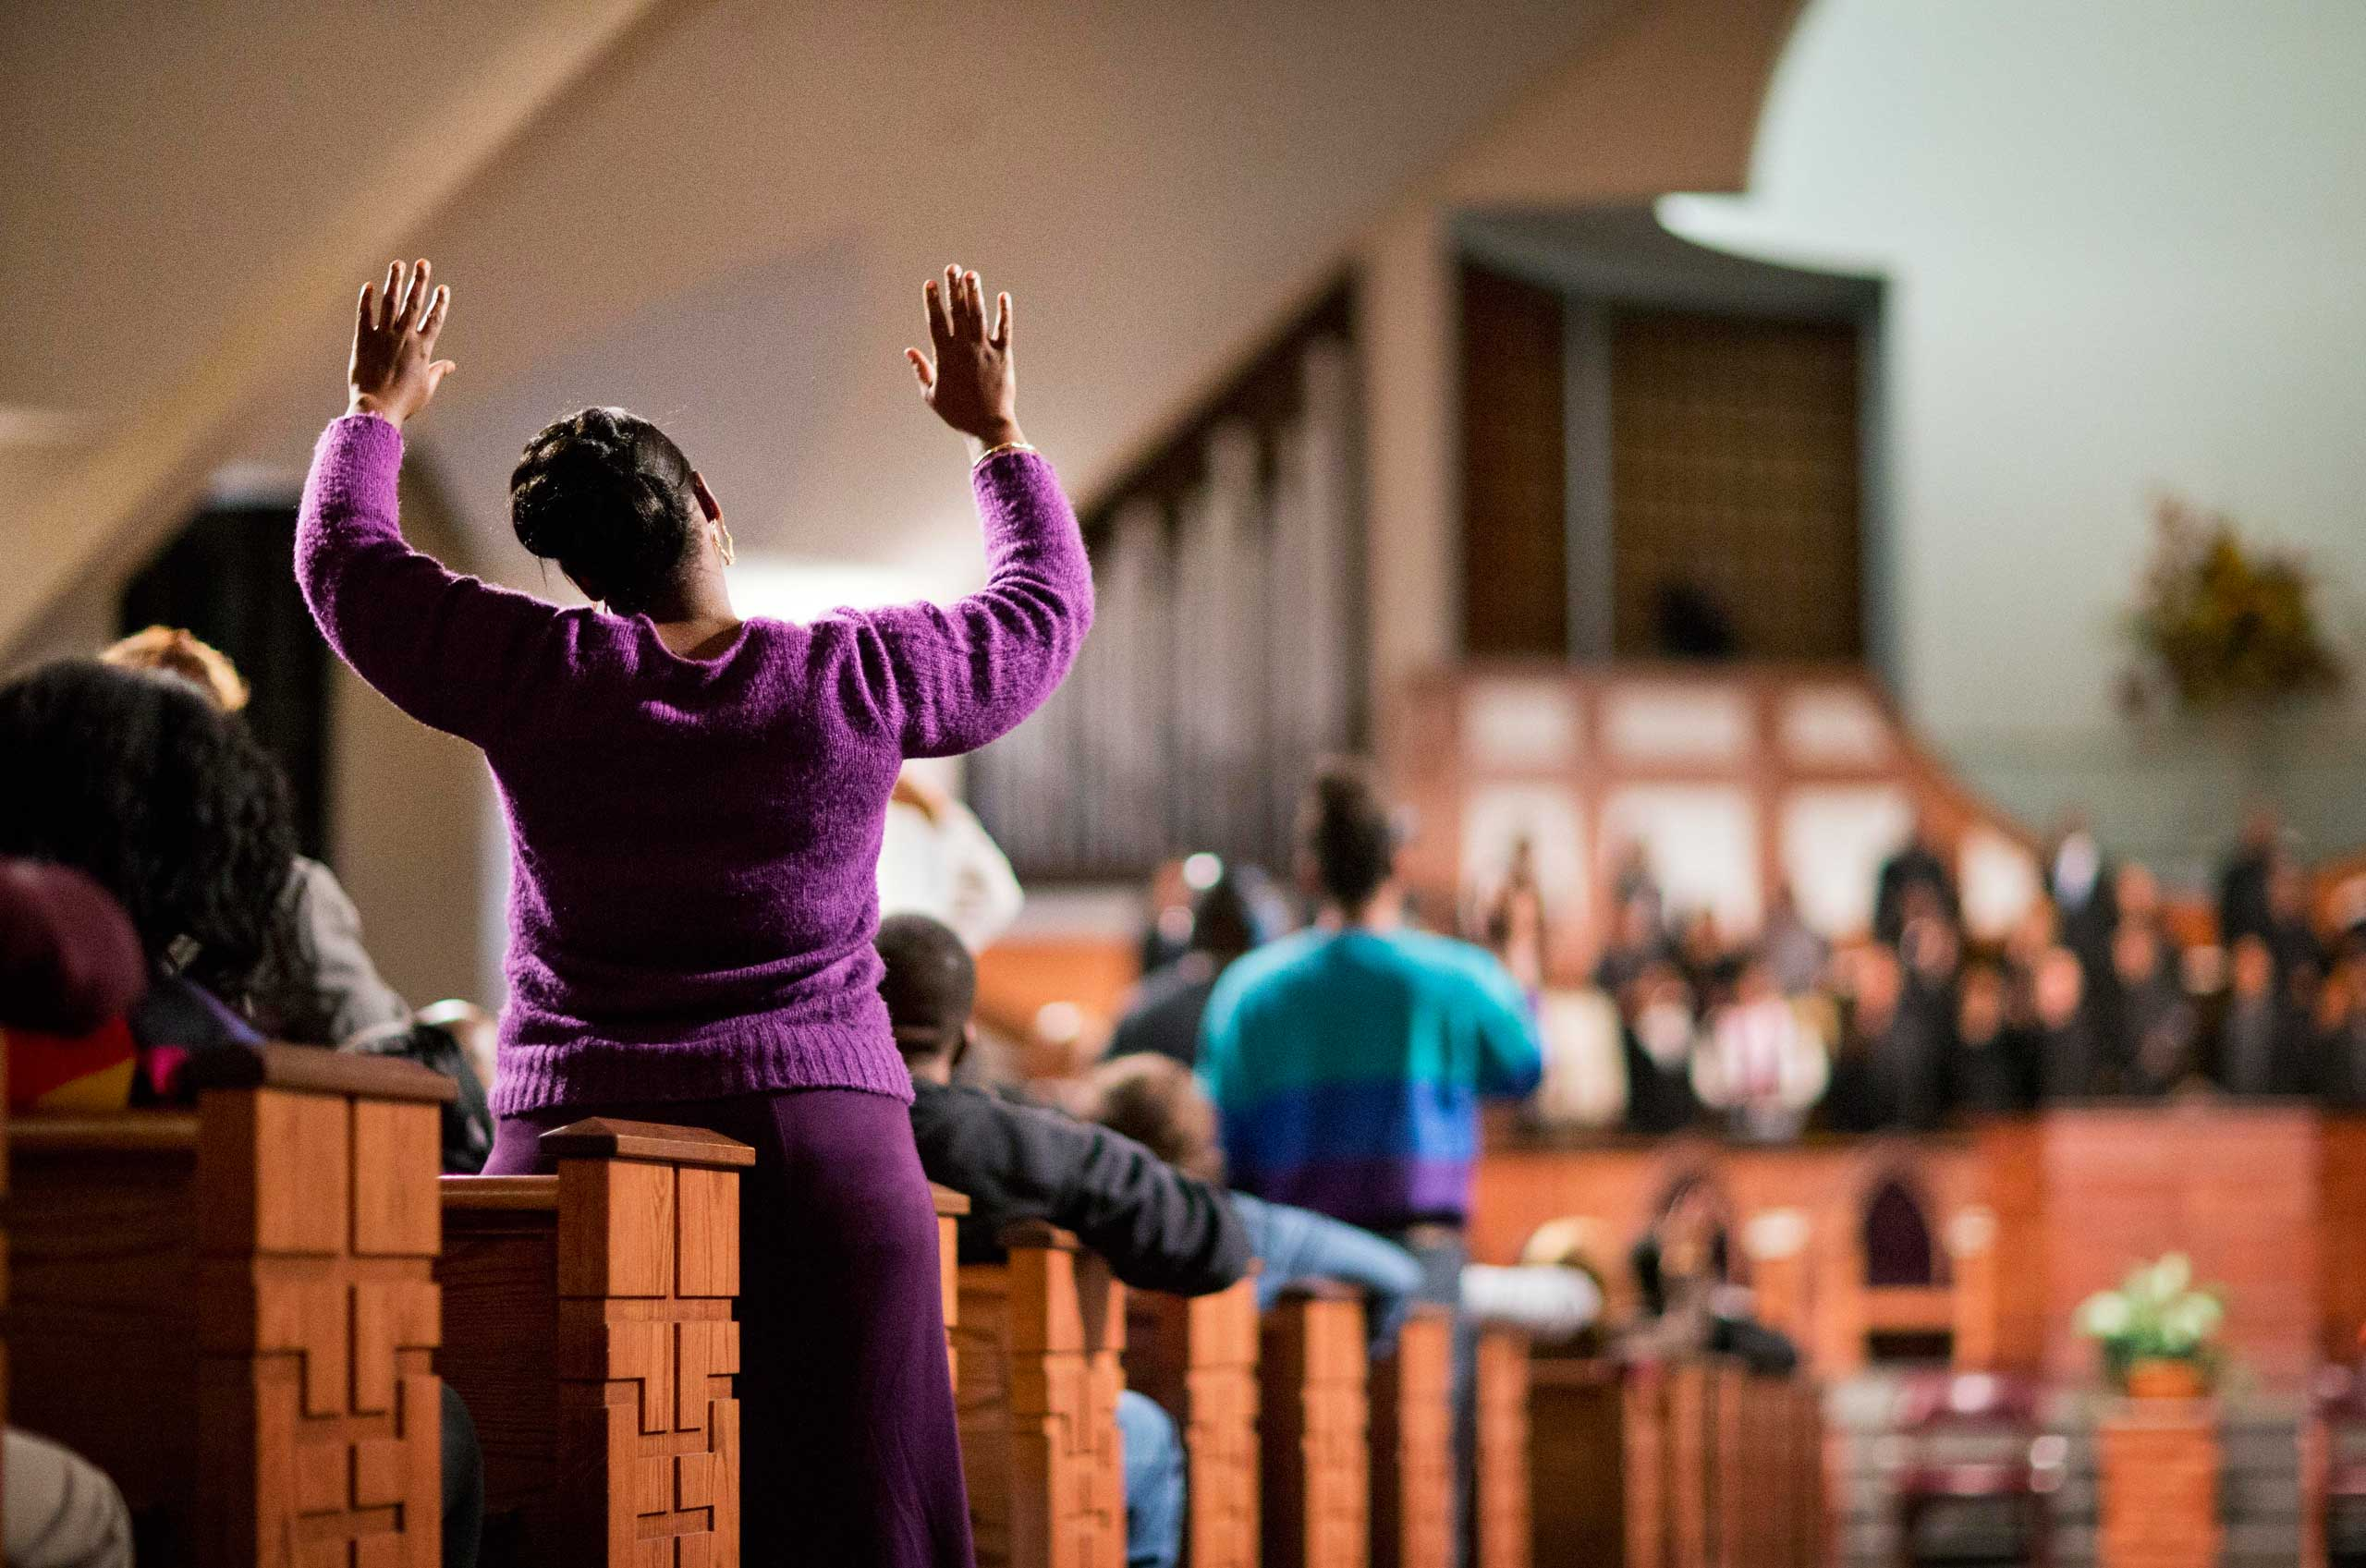 Dec. 1, 2014. A woman raises her hands as the choir sings before U.S. Attorney General Eric Holder speaks to the community during an interfaith service at Ebenezer Baptist Church in Atlanta, where Martin Luther King Jr. preached.